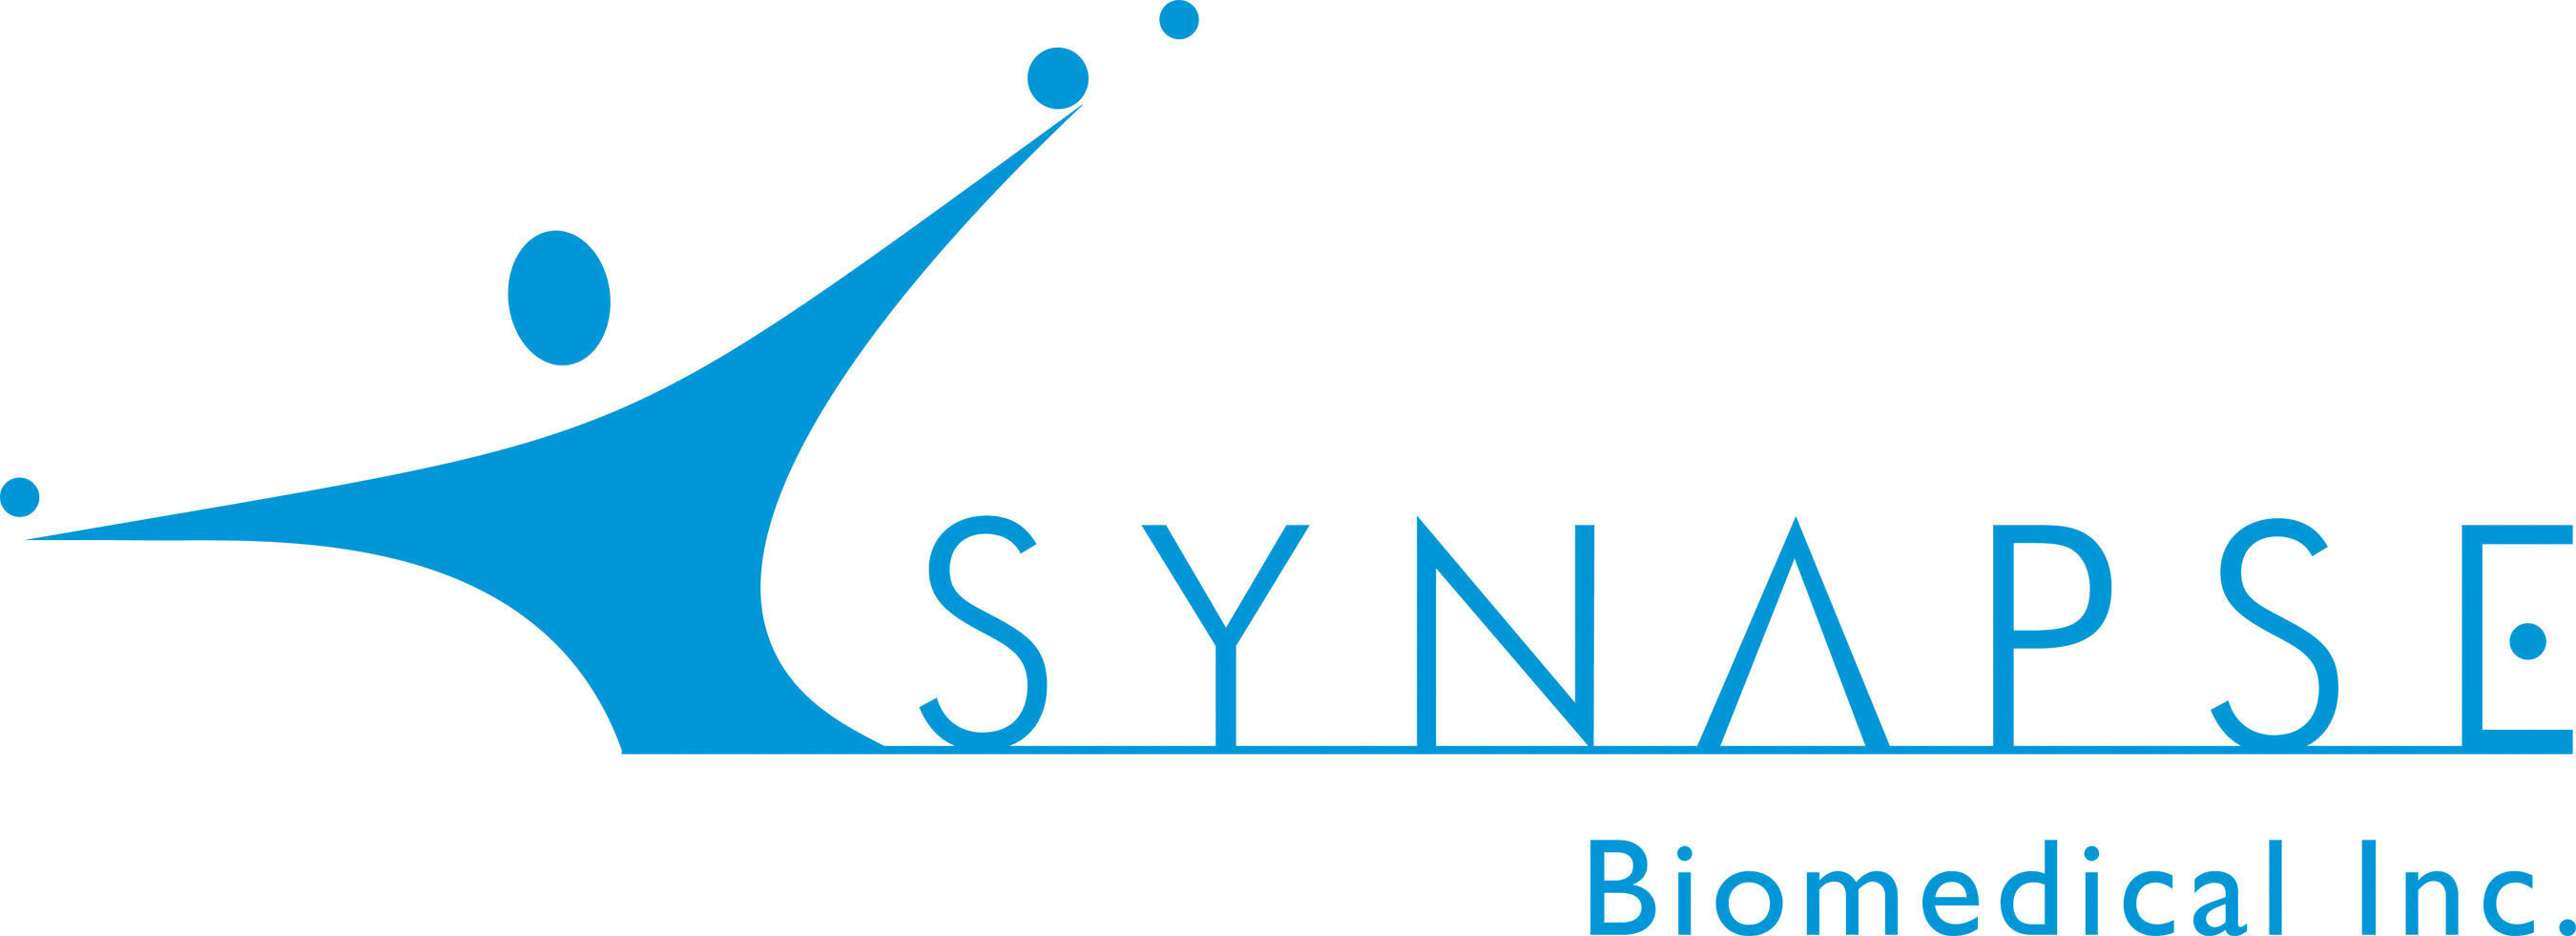 Synapse Biomedical.